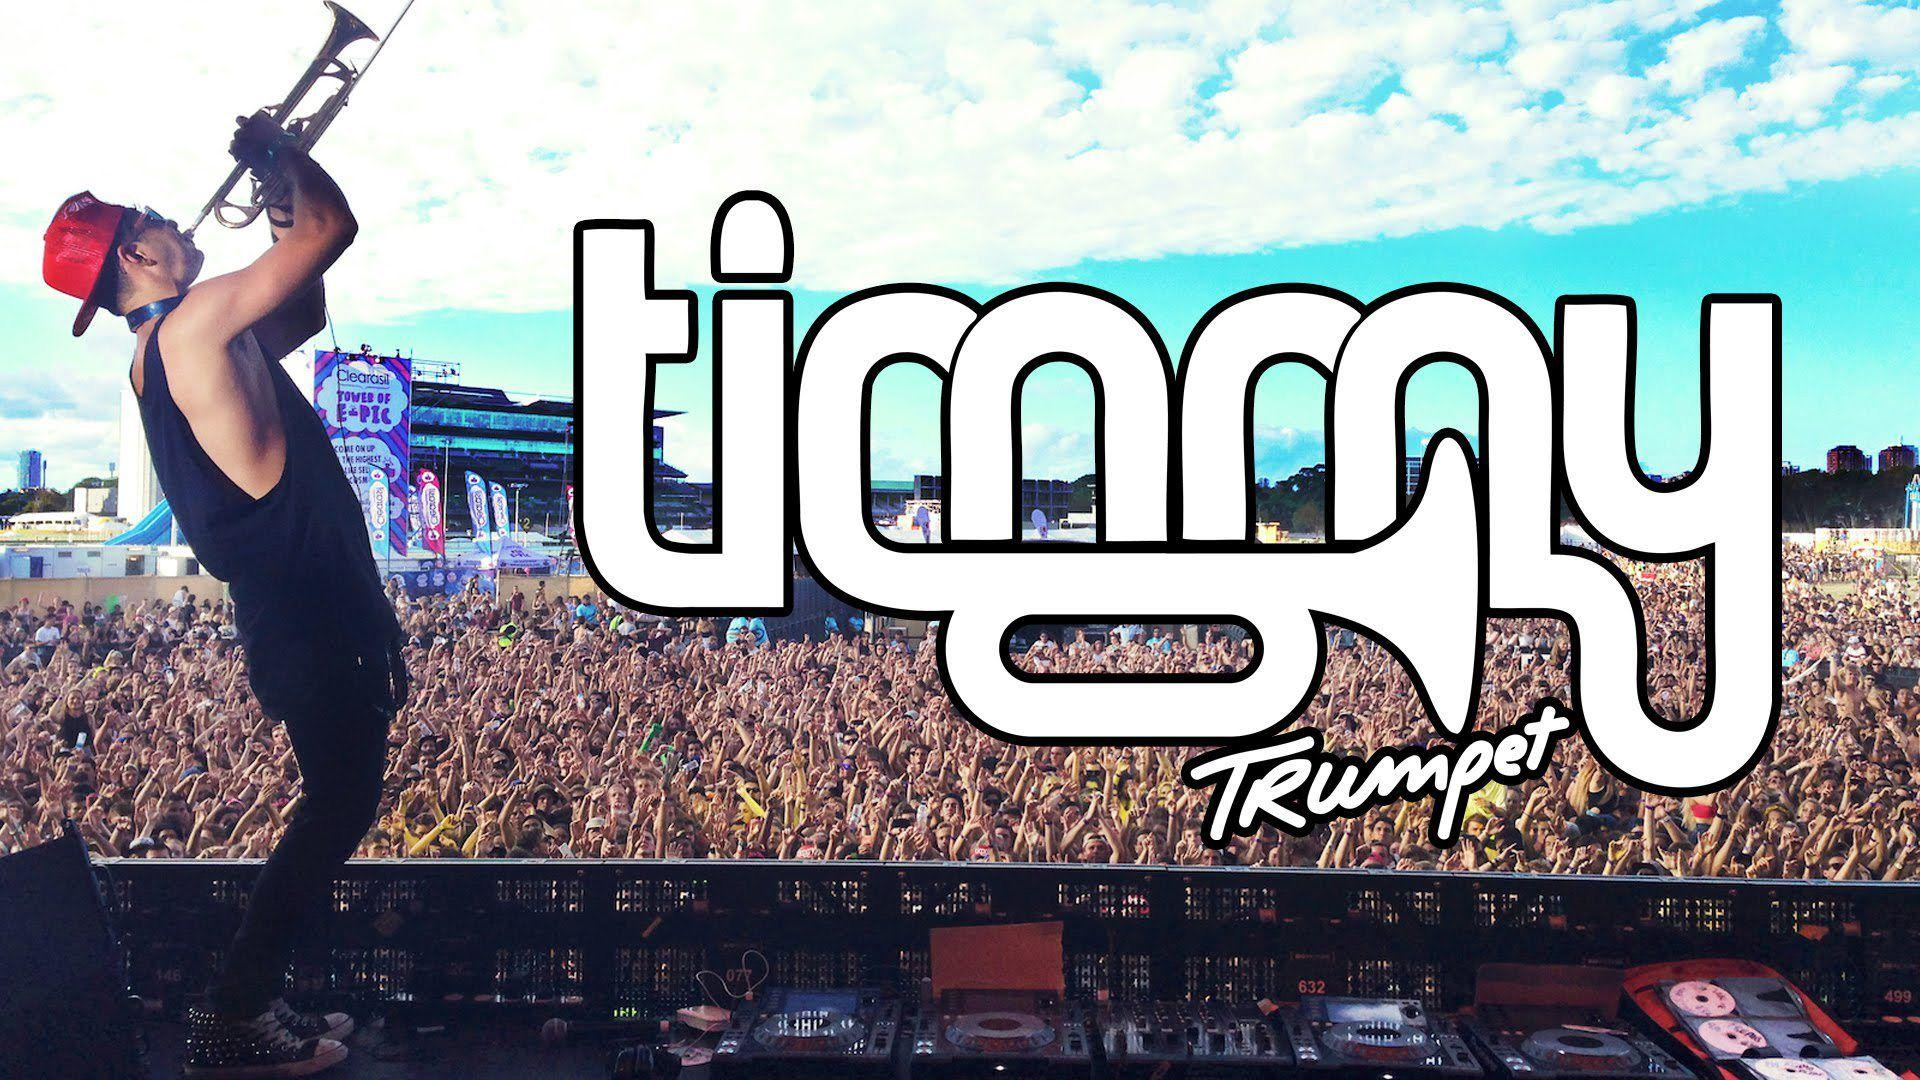 timmy trumpet freaks video download